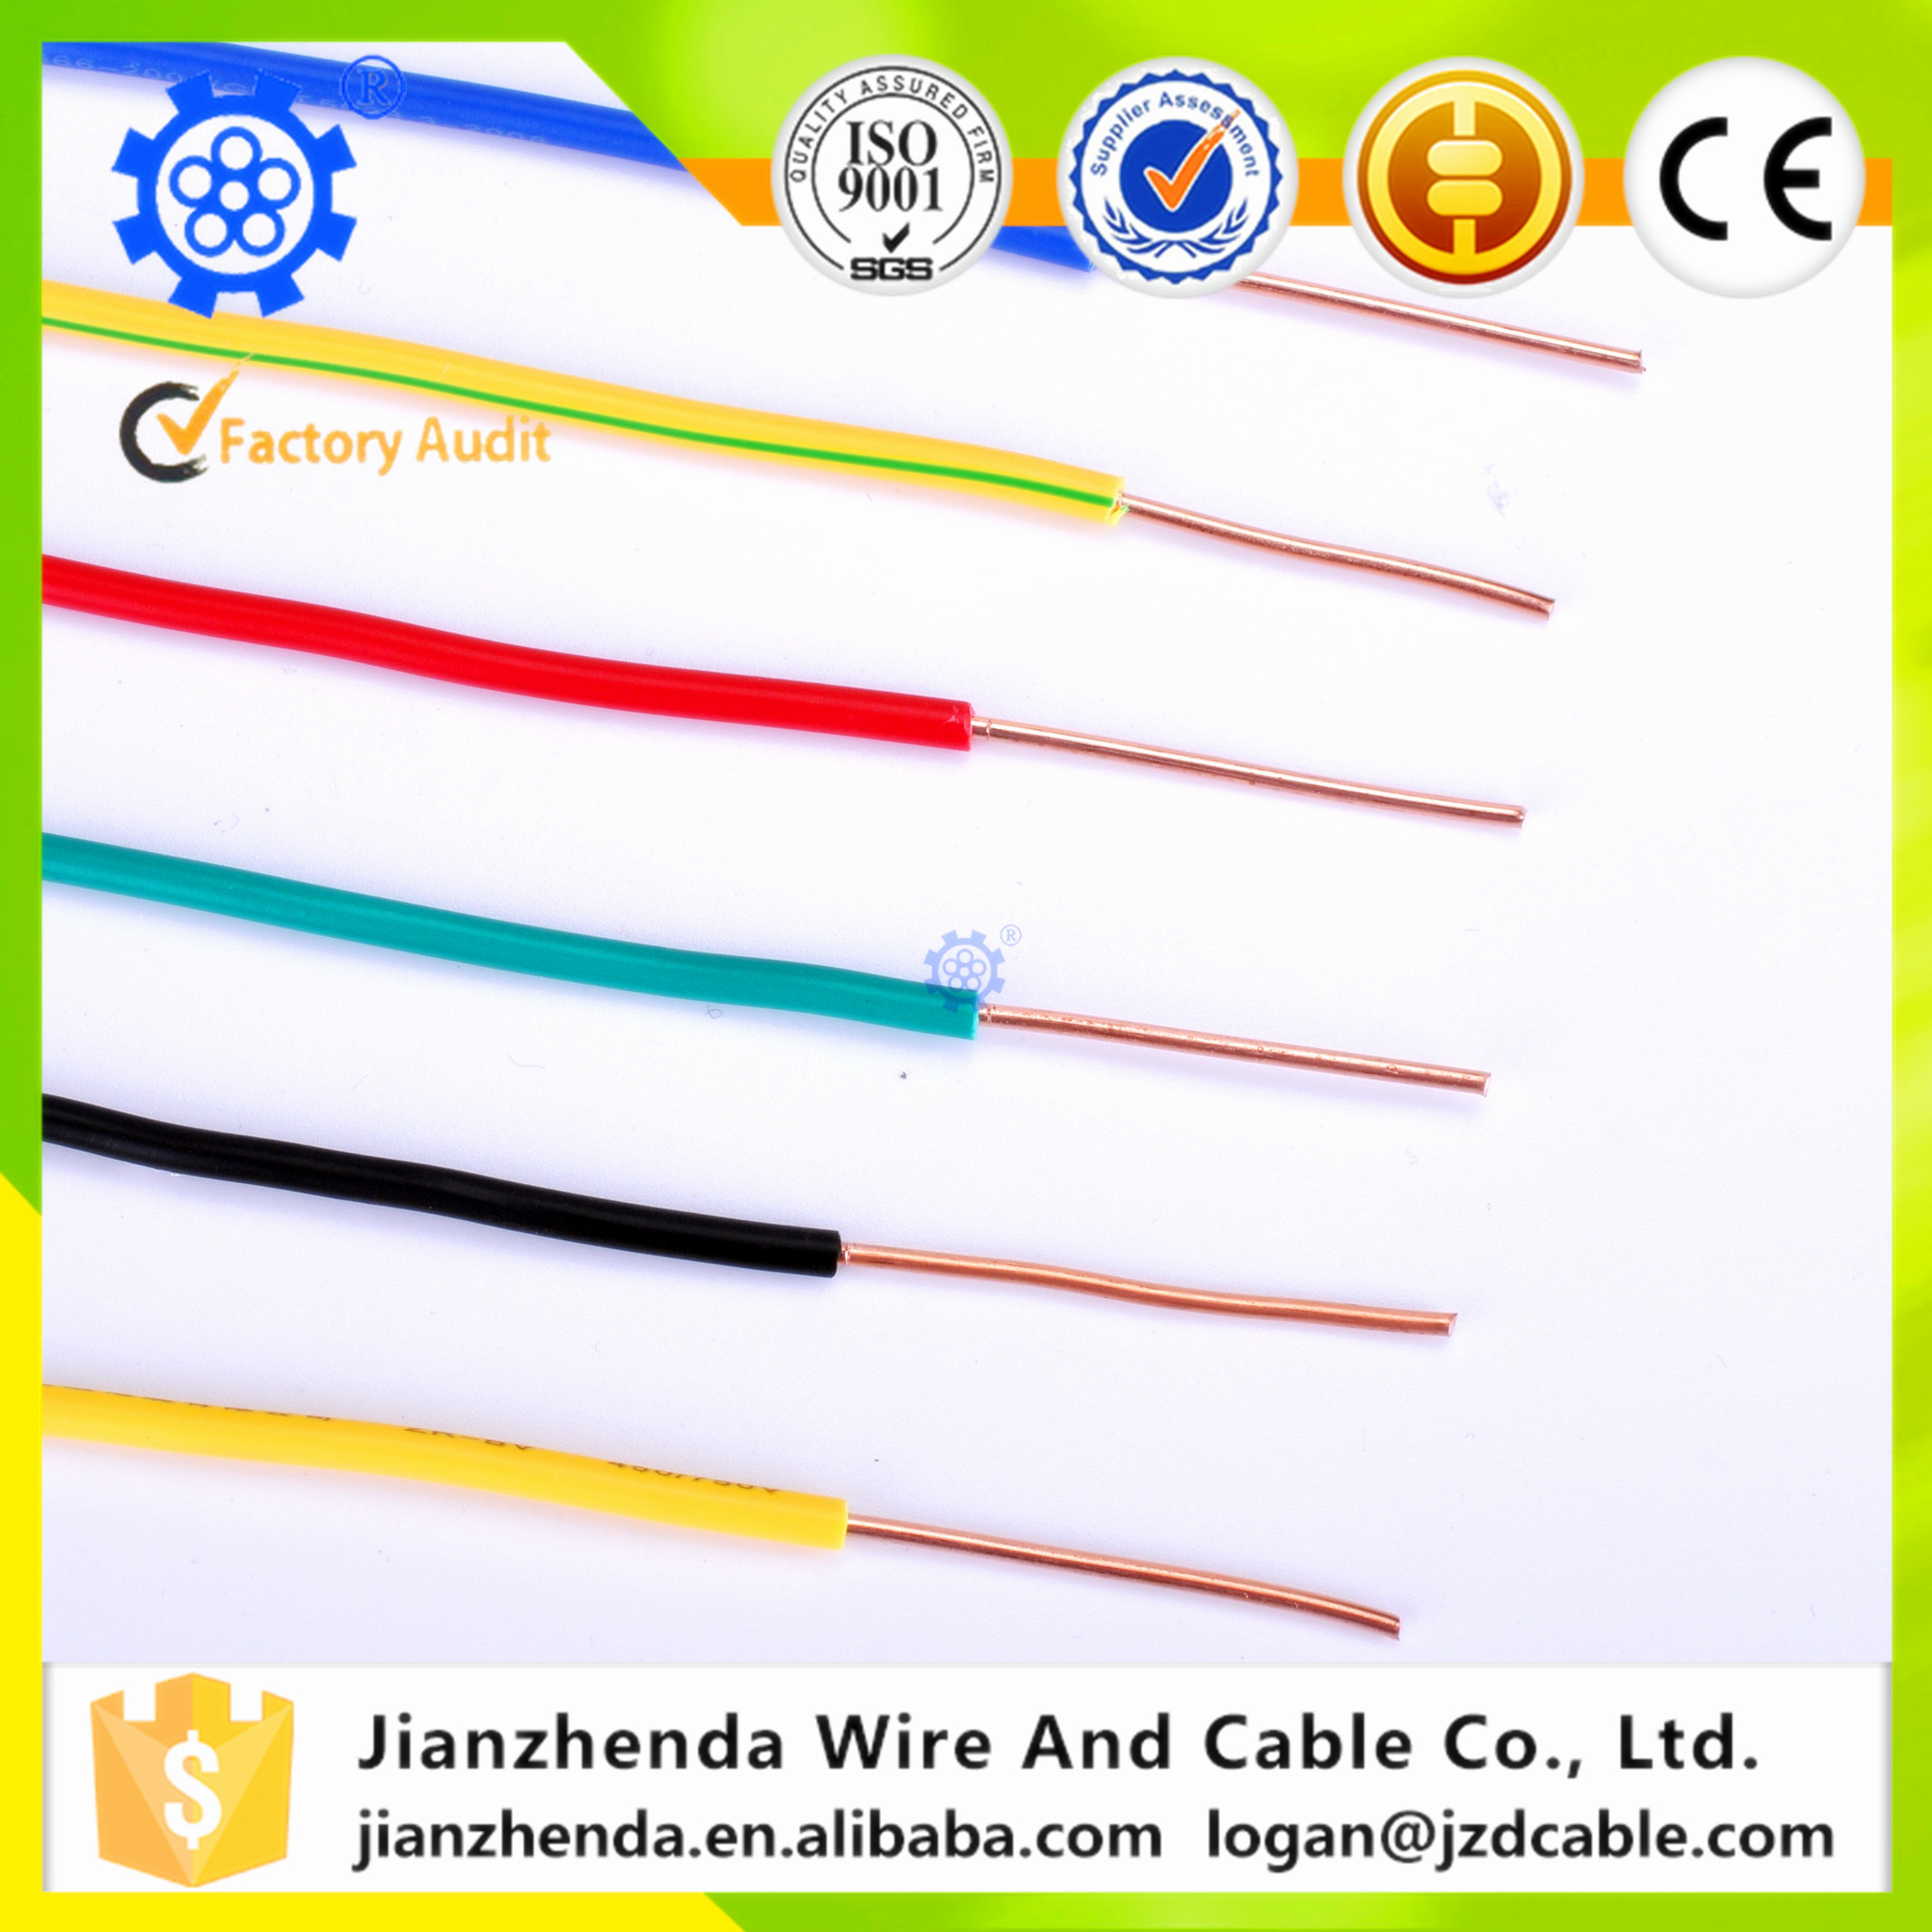 China cheap Electronic wire Cable